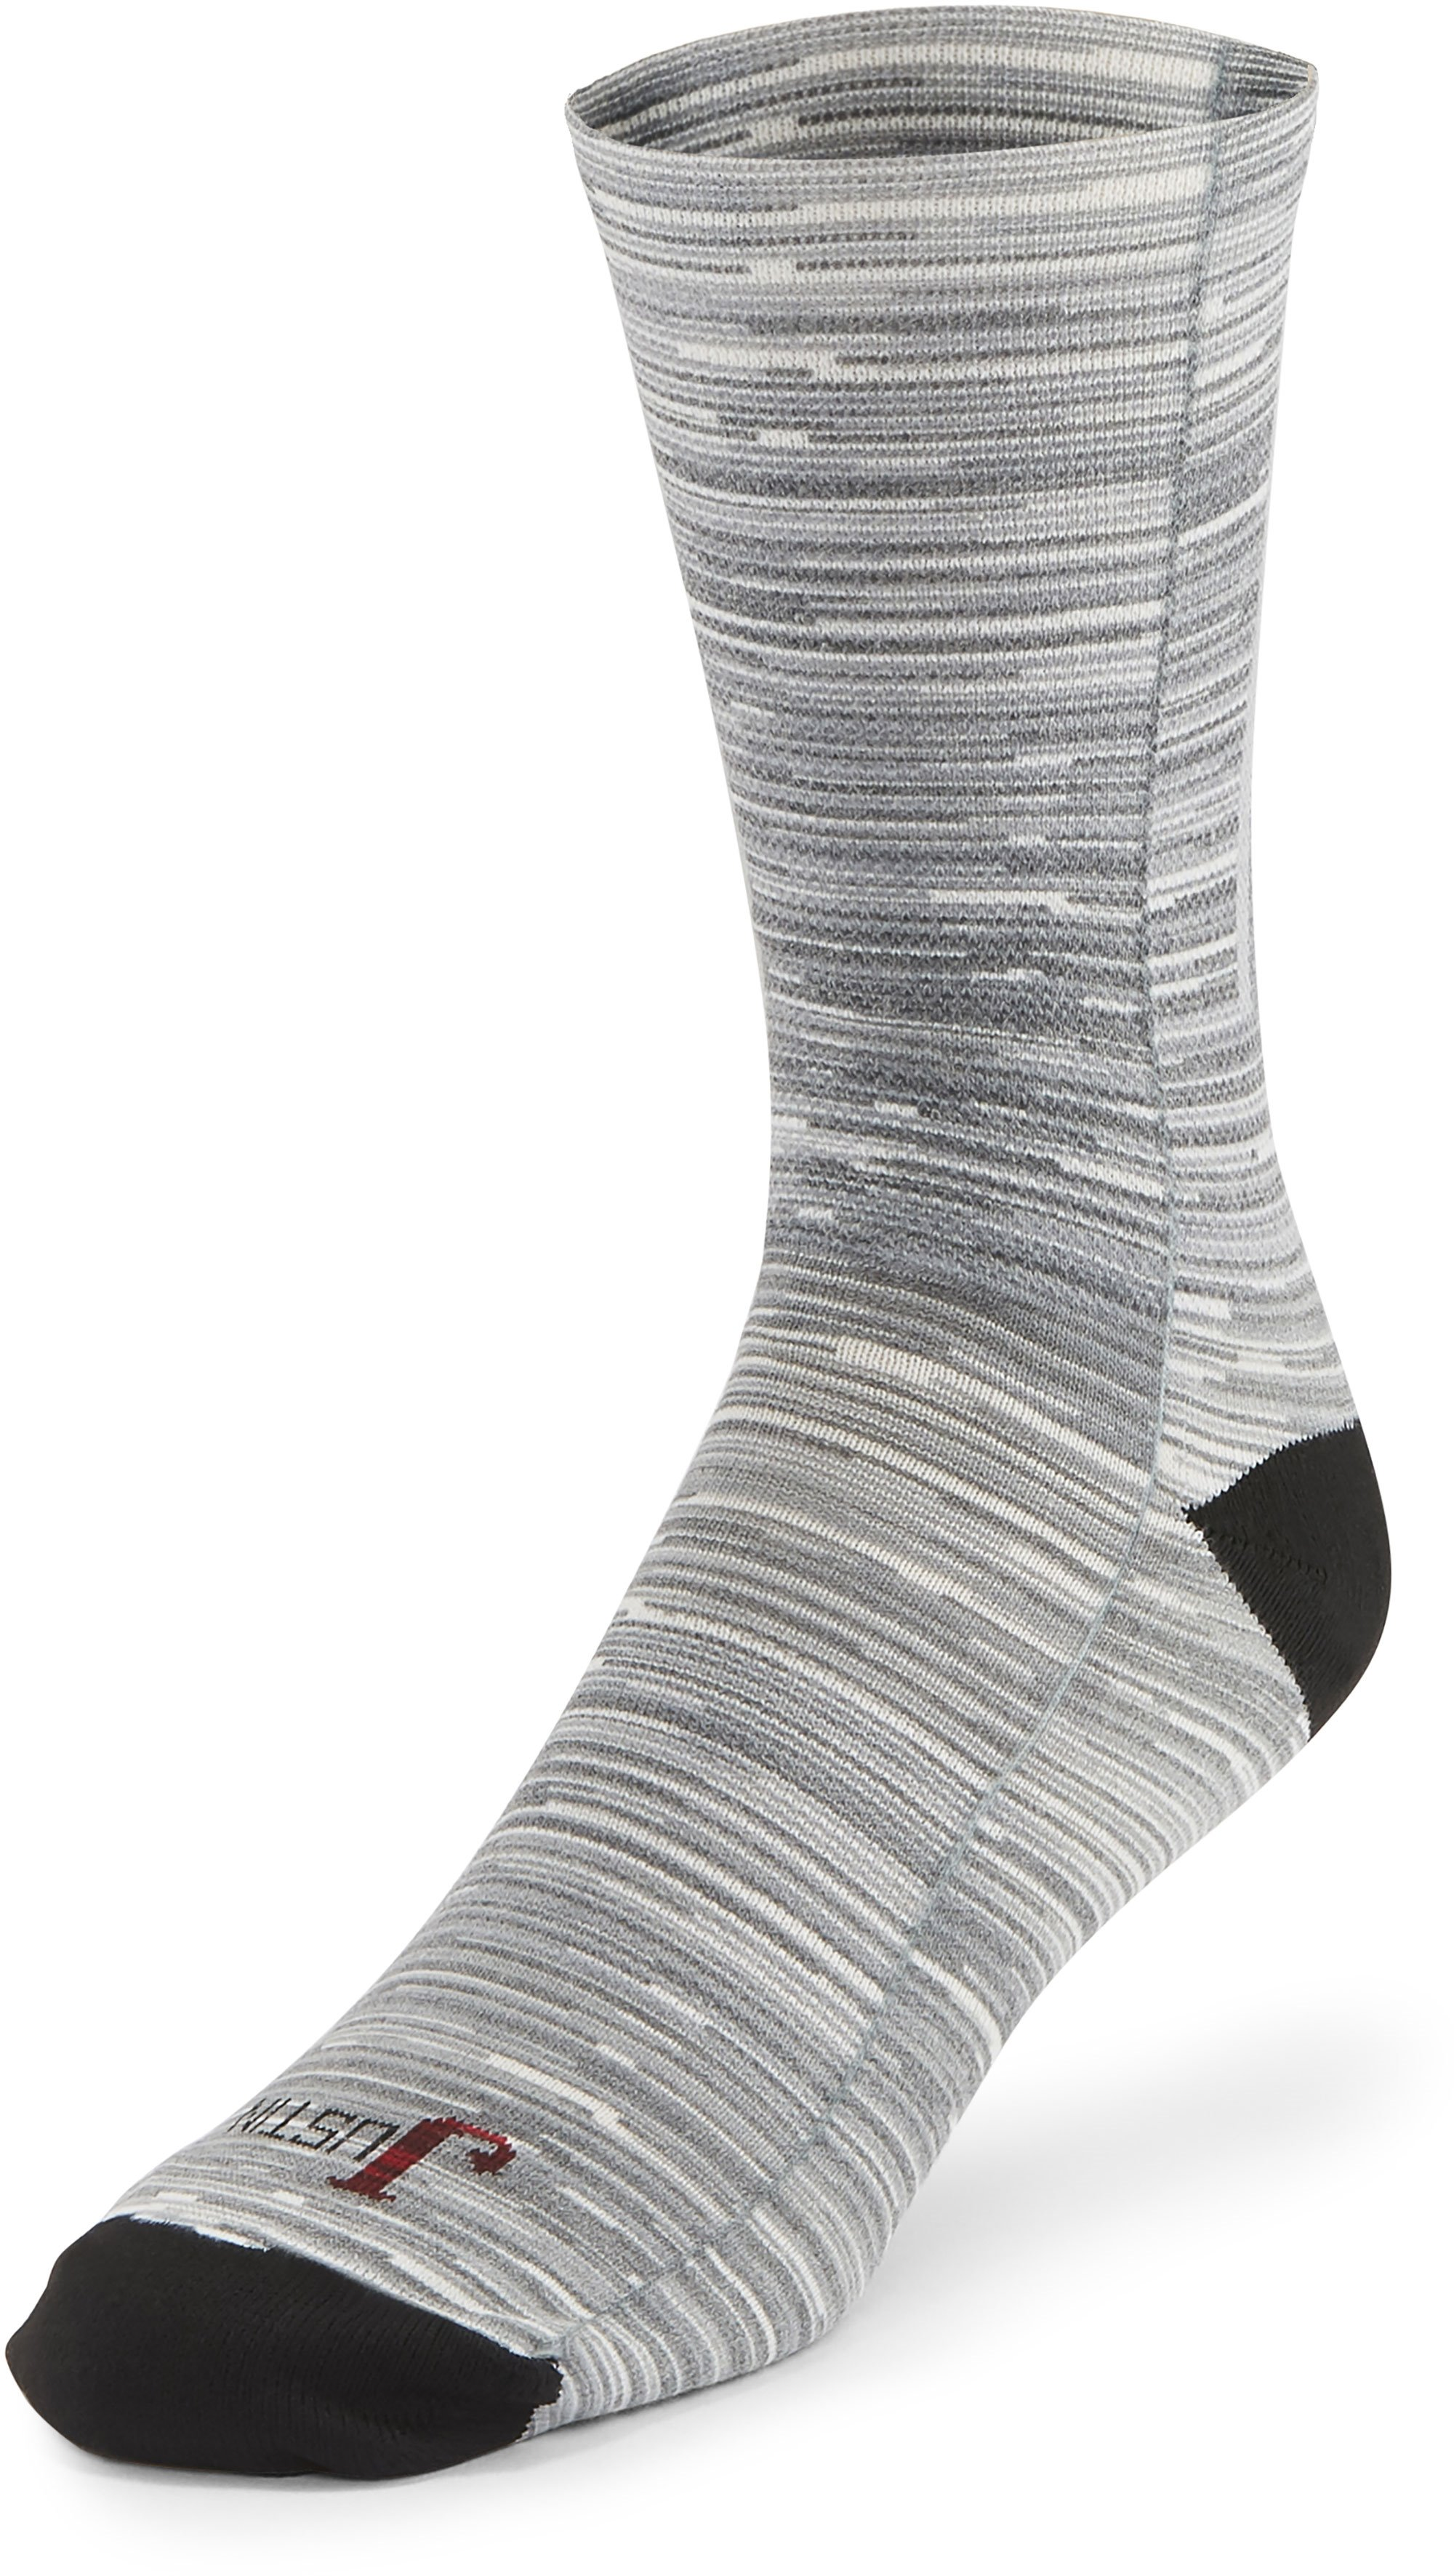 Product Image for style SOX9490D